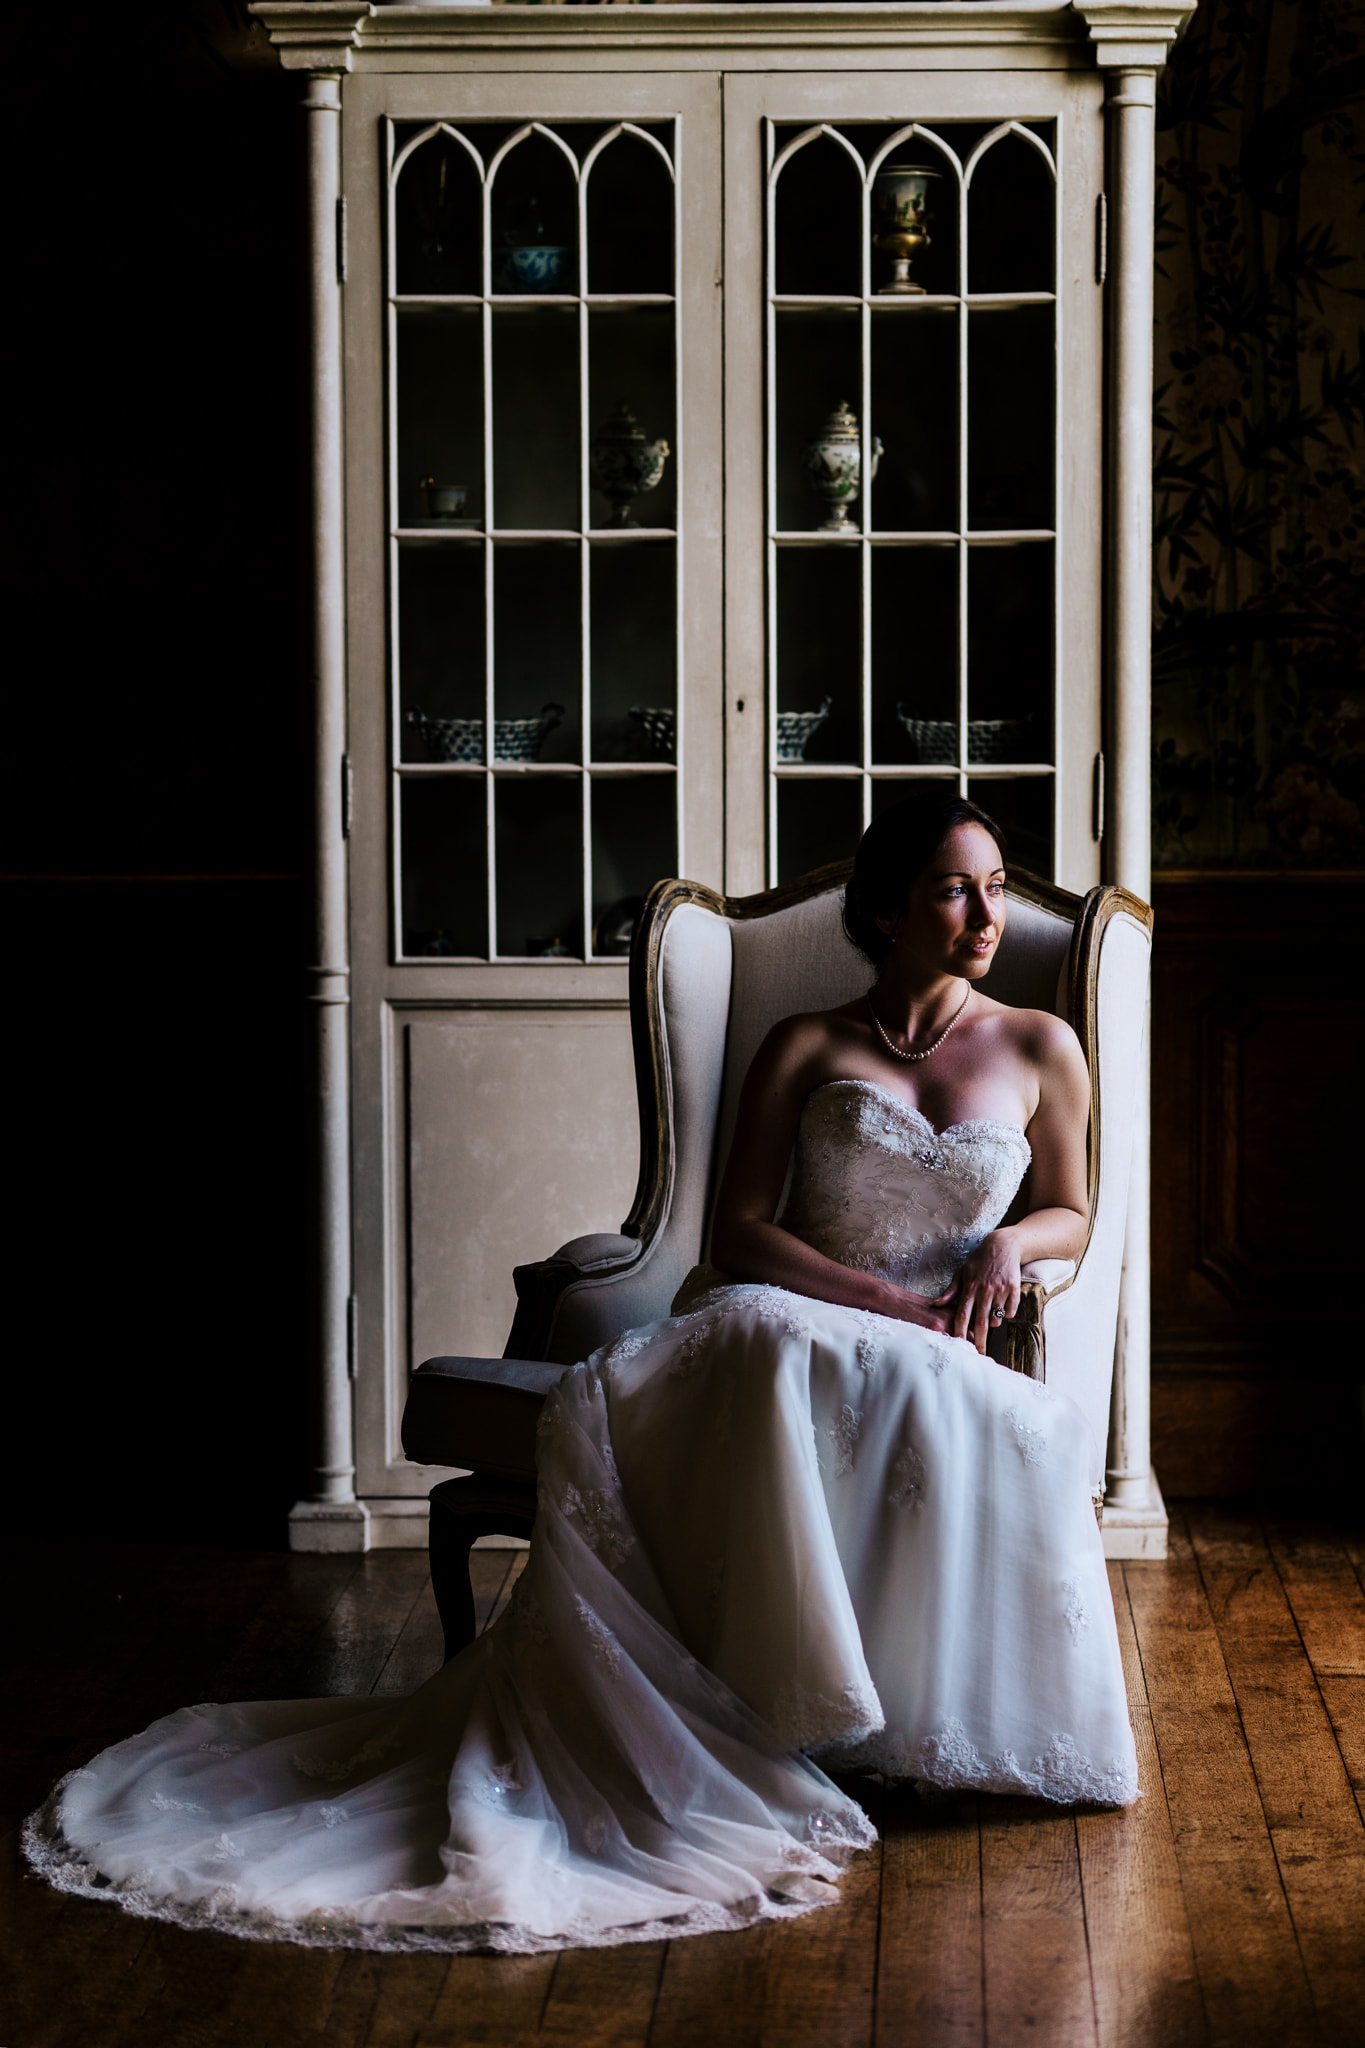 bride getting ready in natural light window portrait